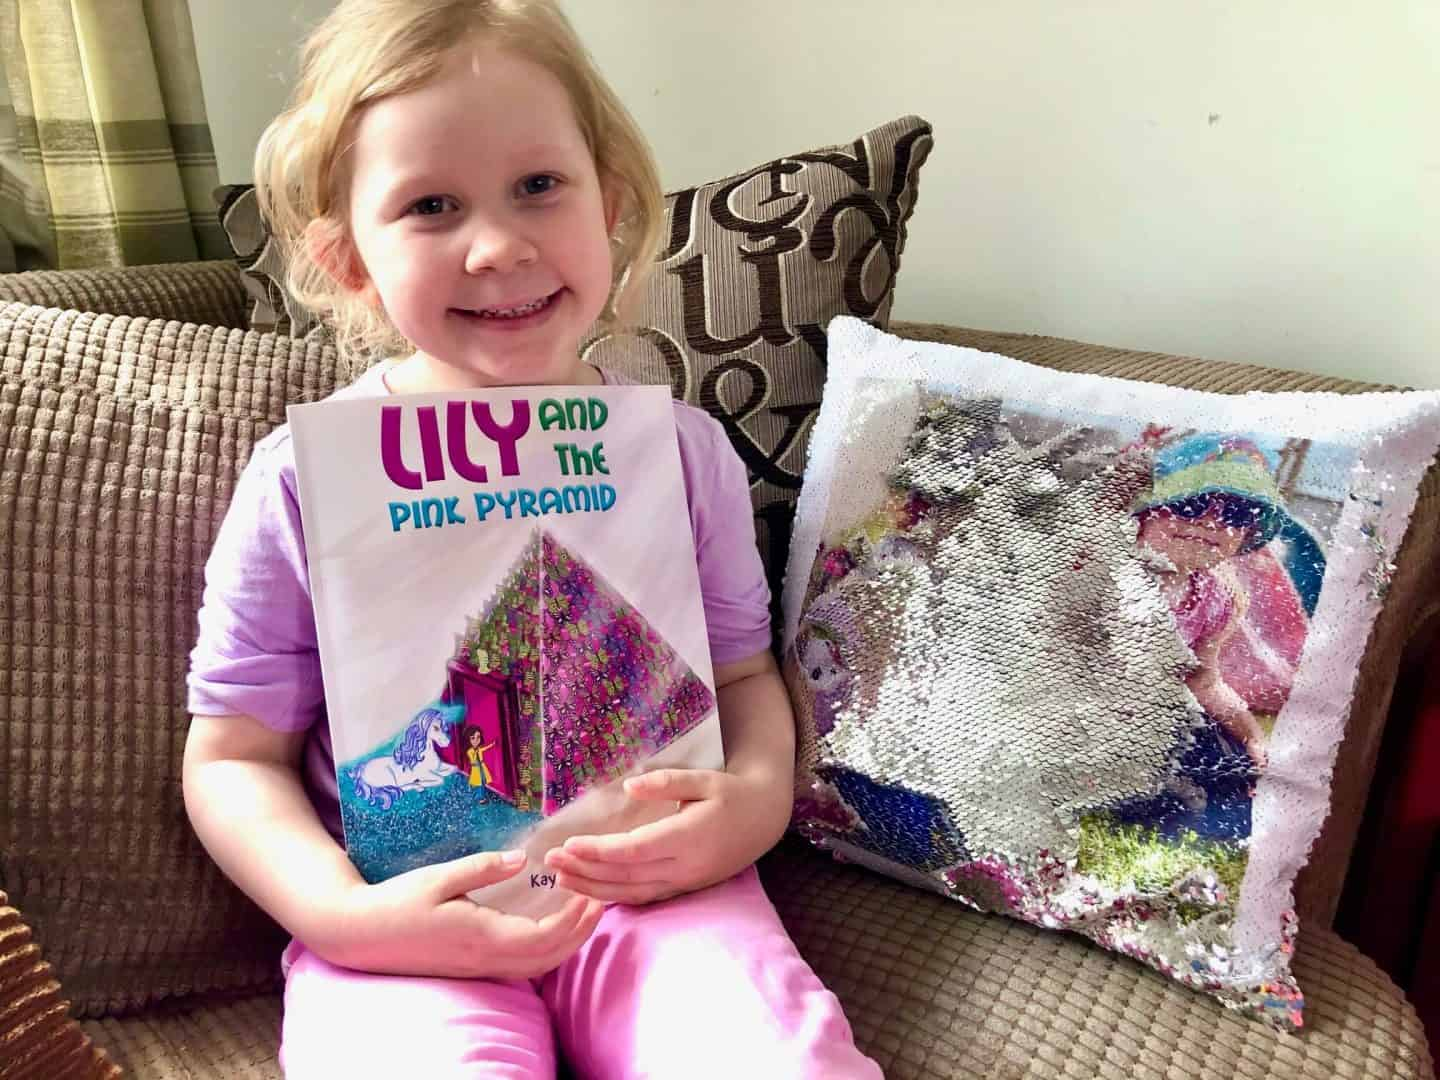 L with her book - Lily and the Pink Pyramid